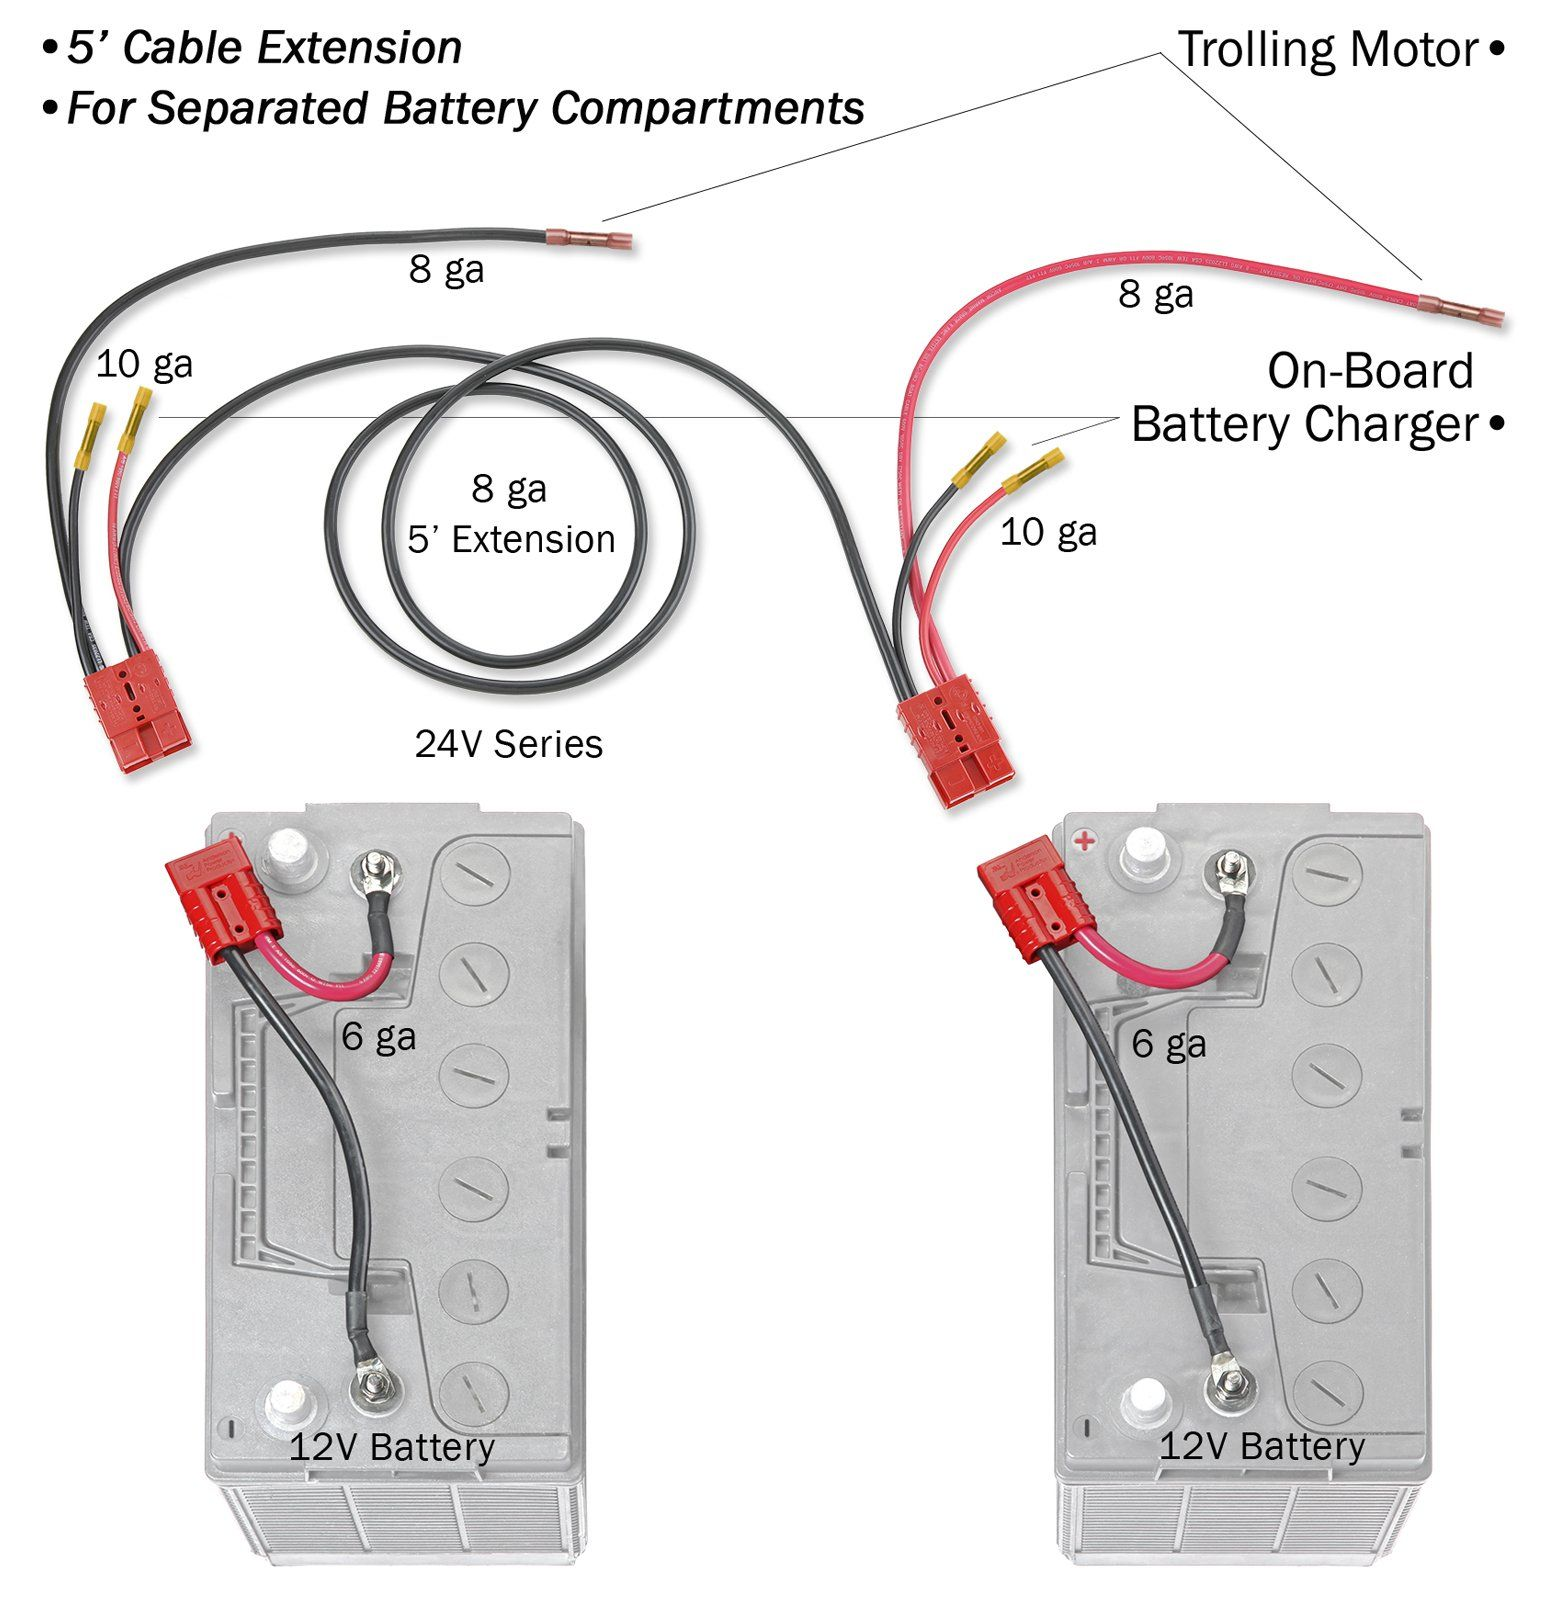 24 Volt Trolling Motor Connection 5 Extension For Separated Battery Compartments Rce24vb5chk In 2020 Trolling Motor Marine Equipment Boat Battery